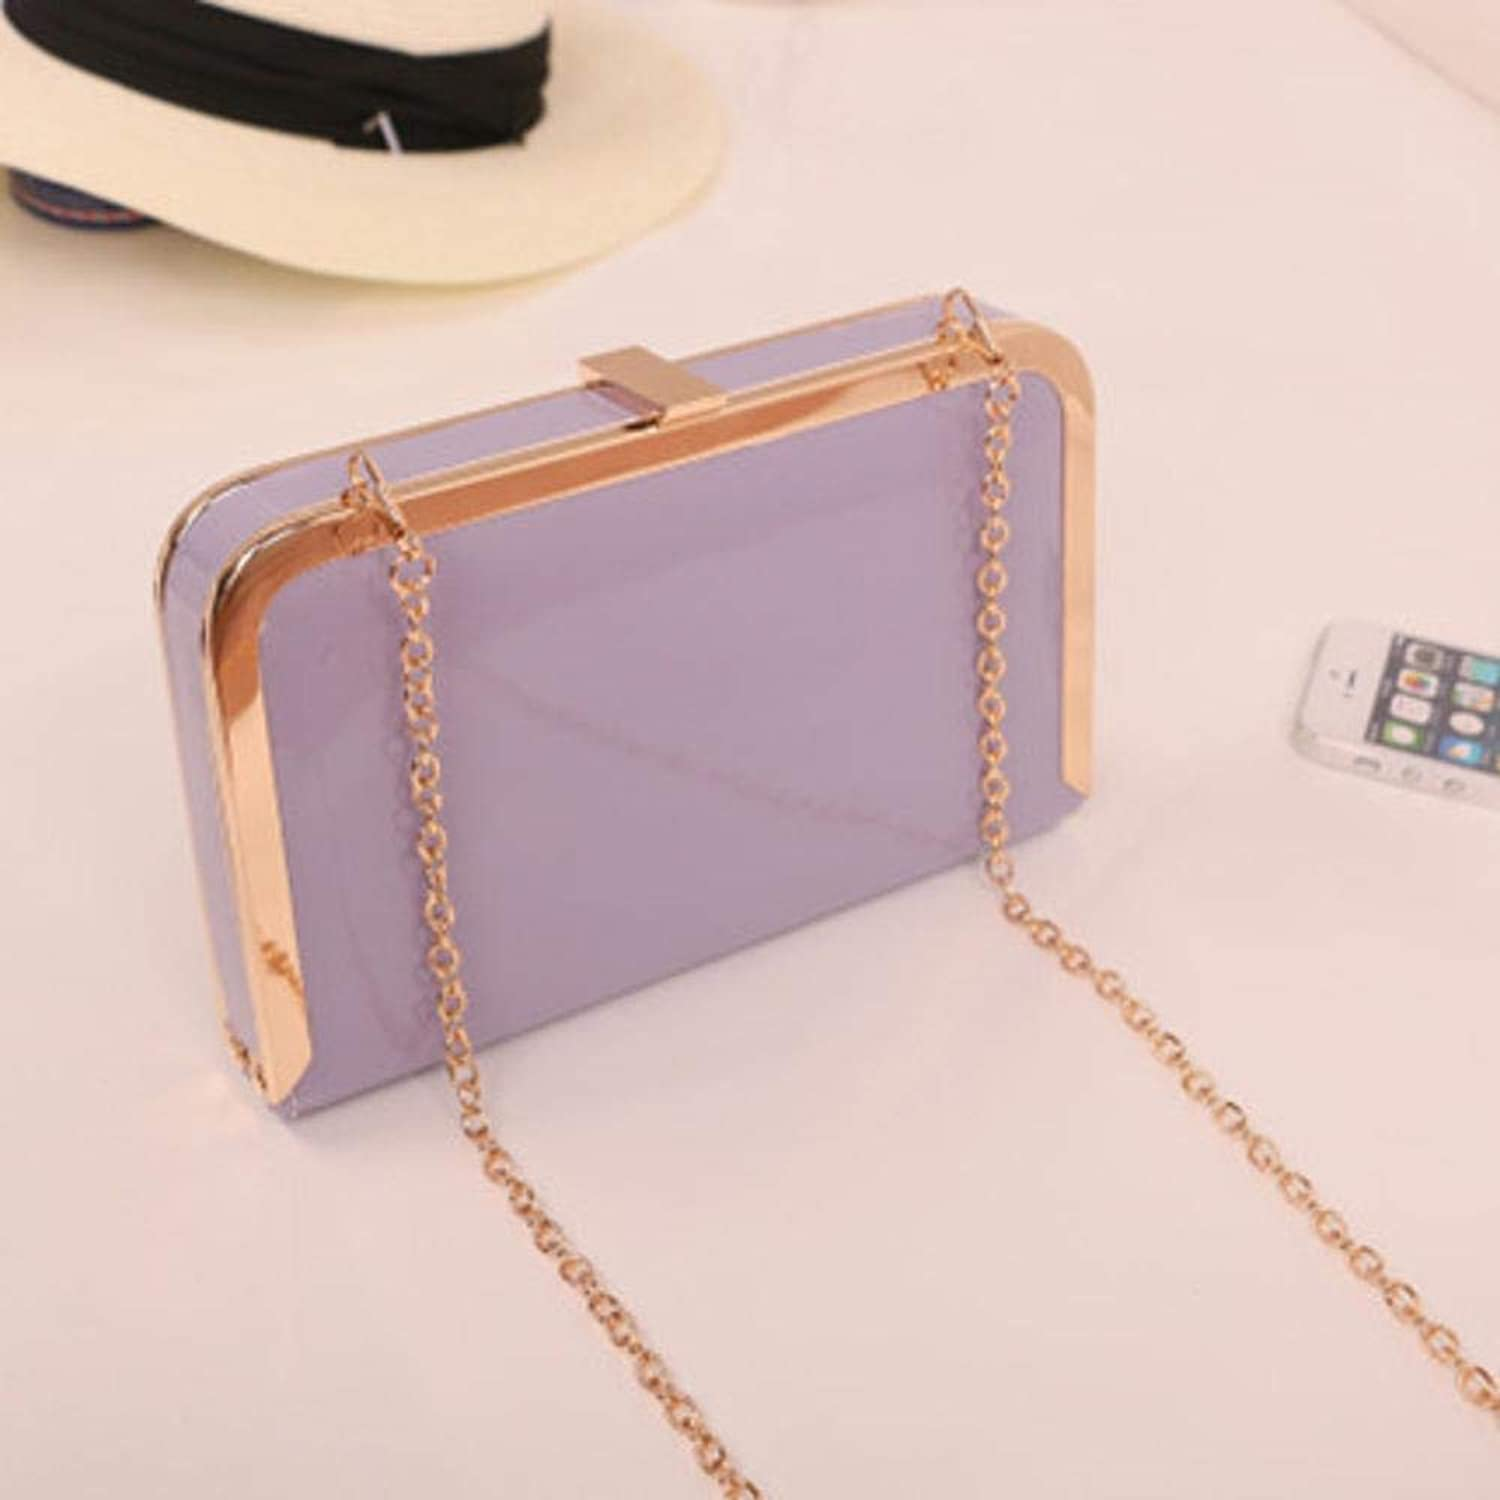 Girls Purse Women's Wallet Lady Patent Chain Bag Metal Clip Single Shoulder Bag PU Leather (color   E)